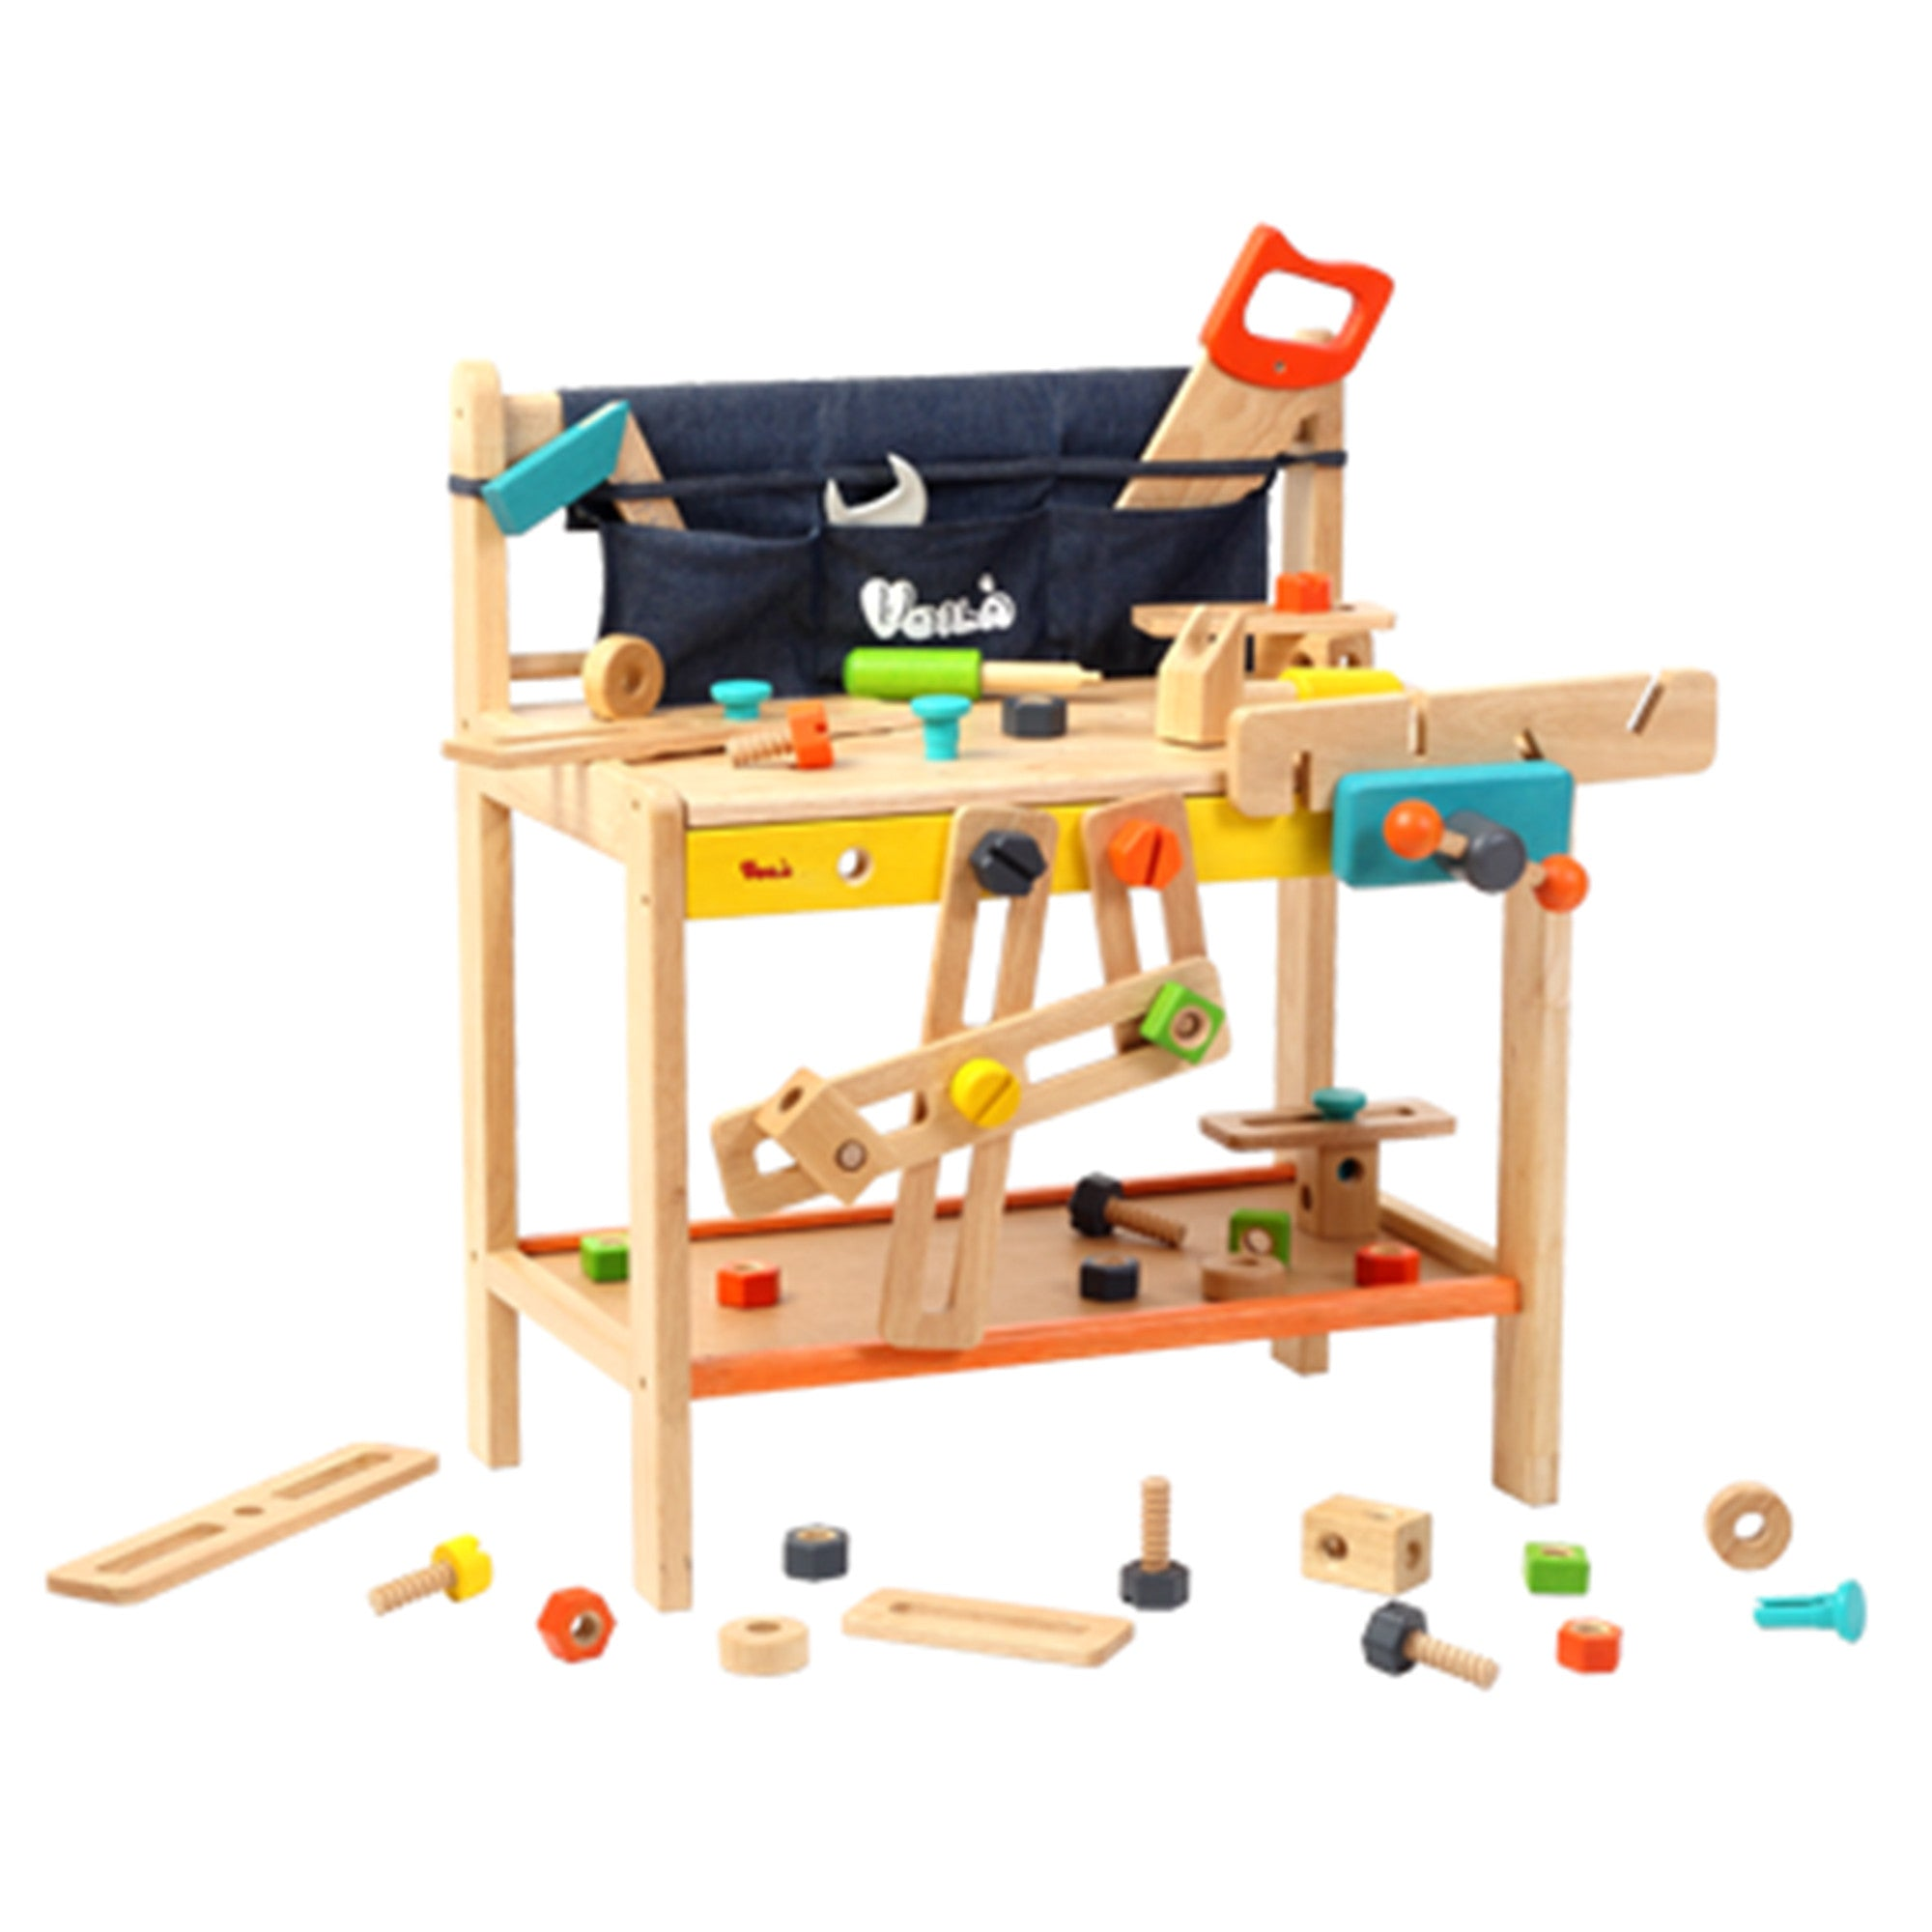 Wooden Toy Workbench set Voila Toy Tools at Little Earth Nest Eco Shop